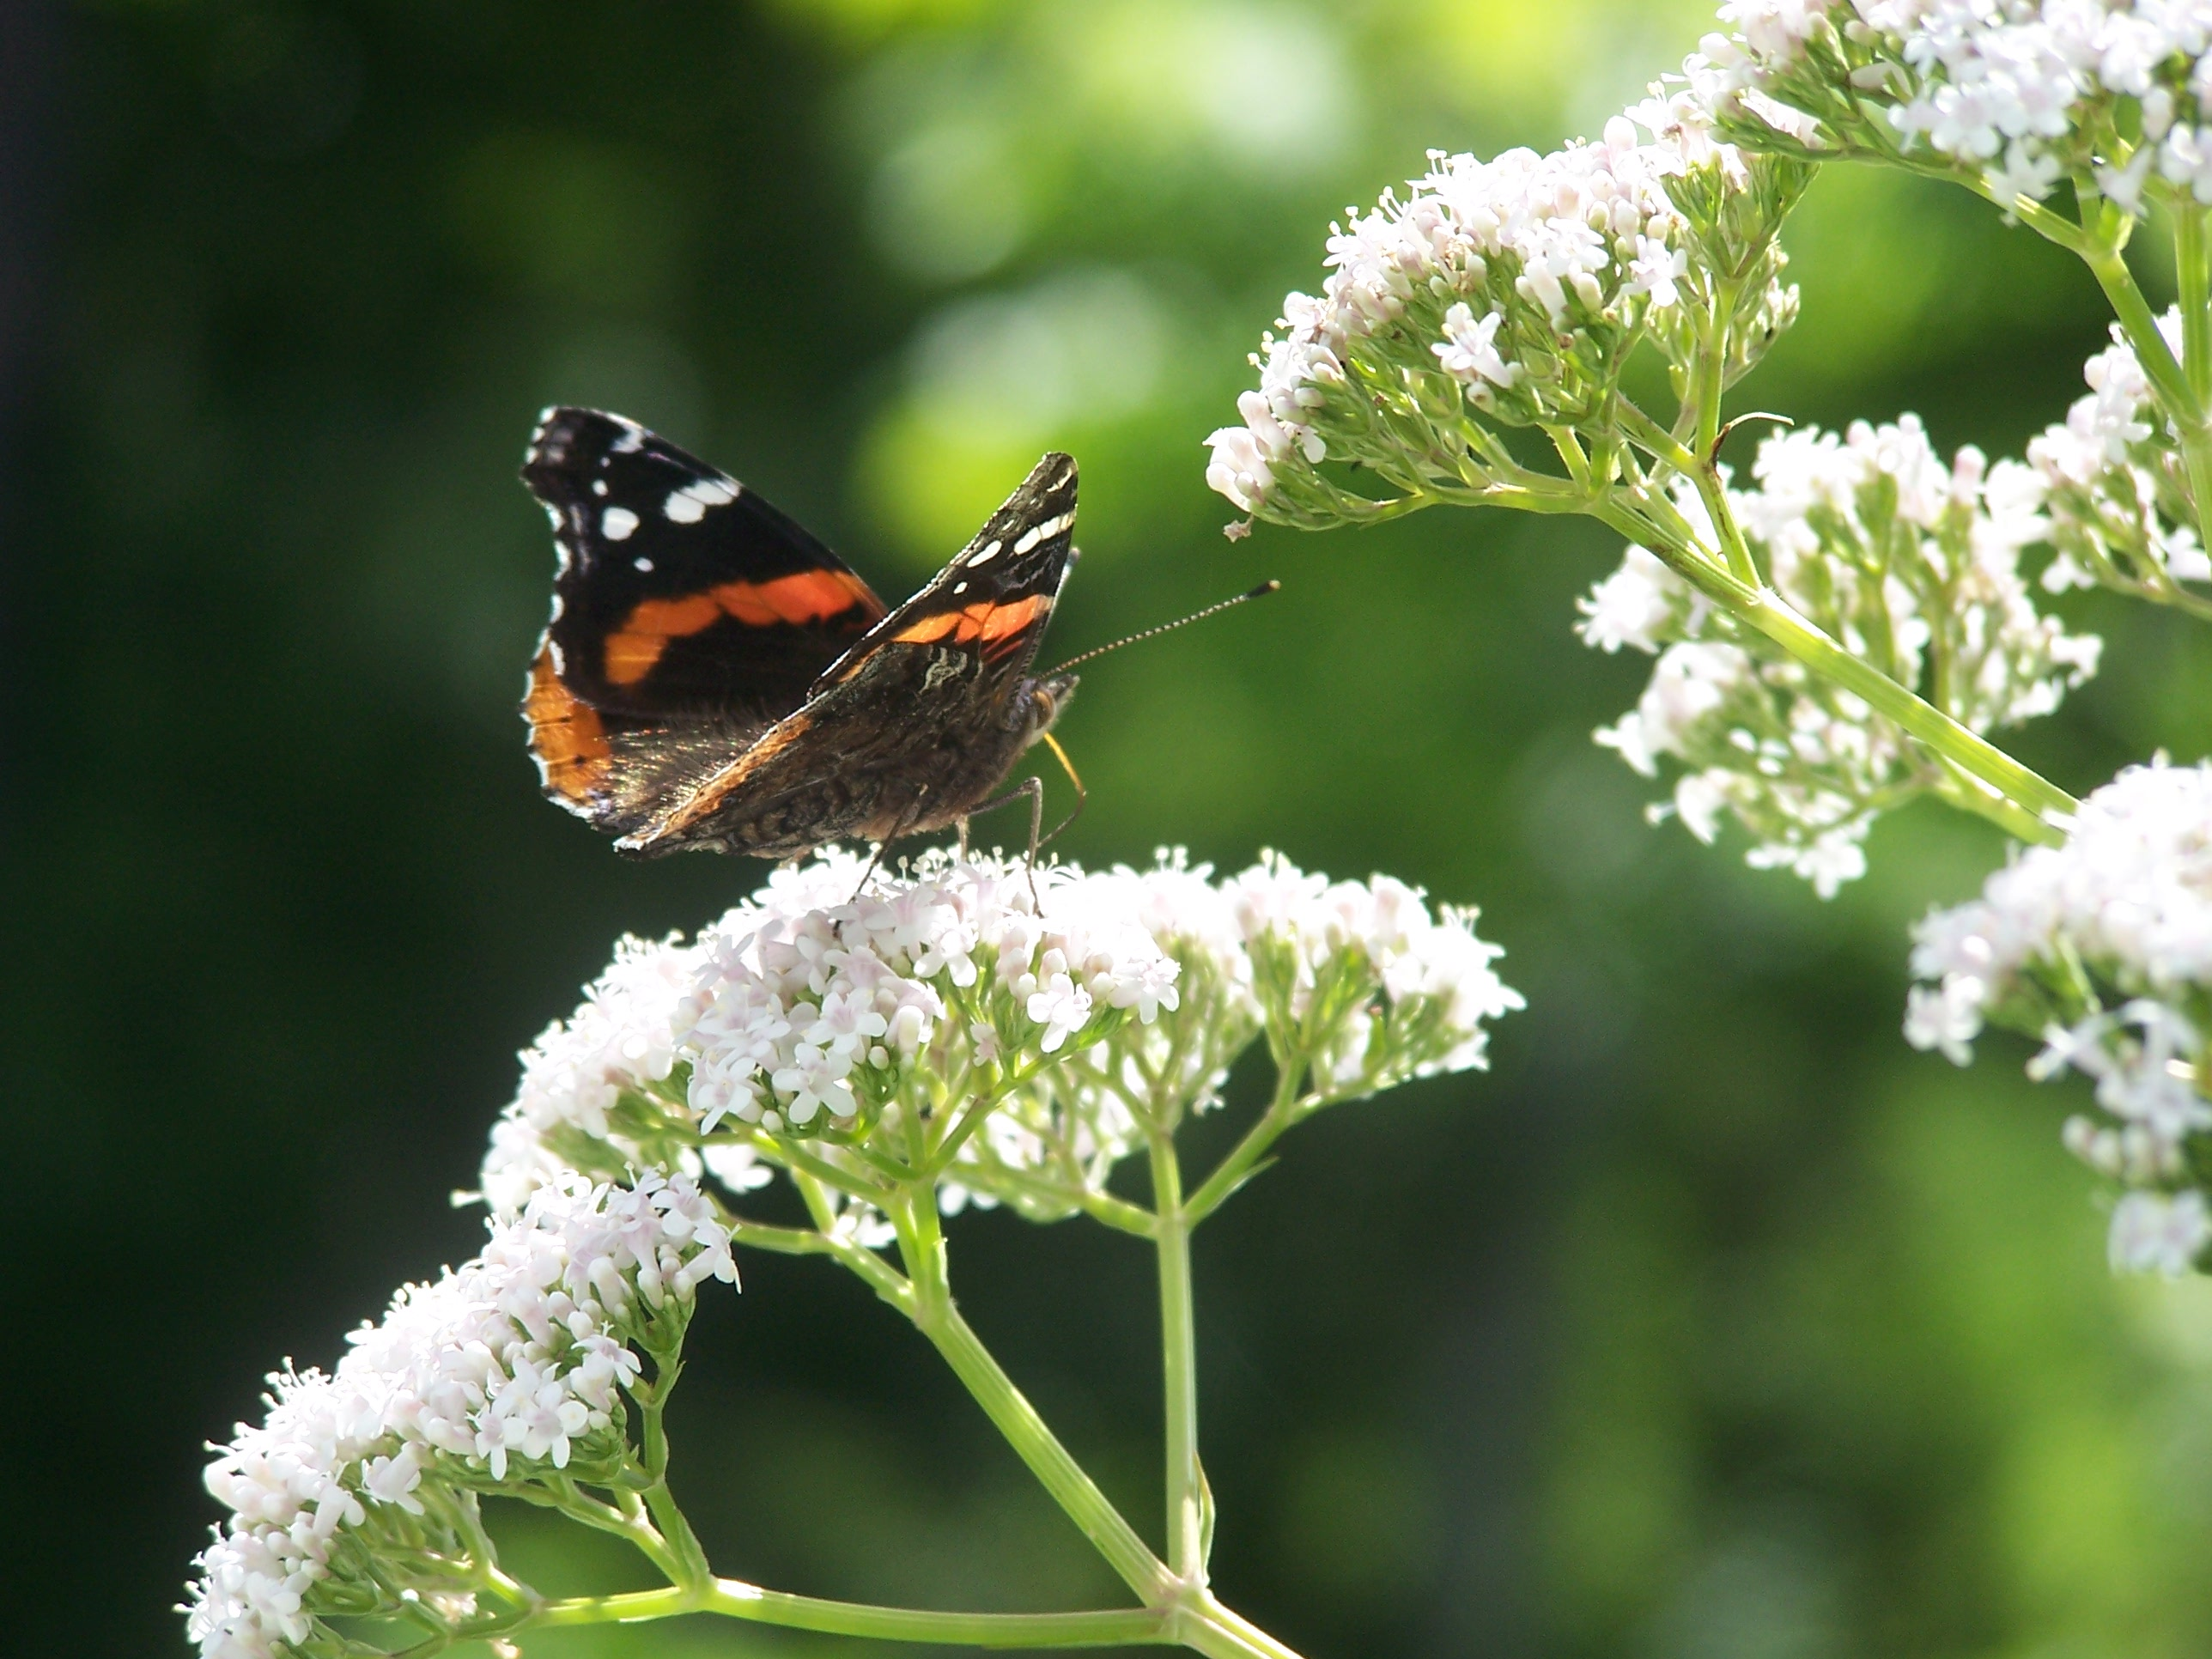 Valerian herb plant is providing nectar to a hungry butterfly.